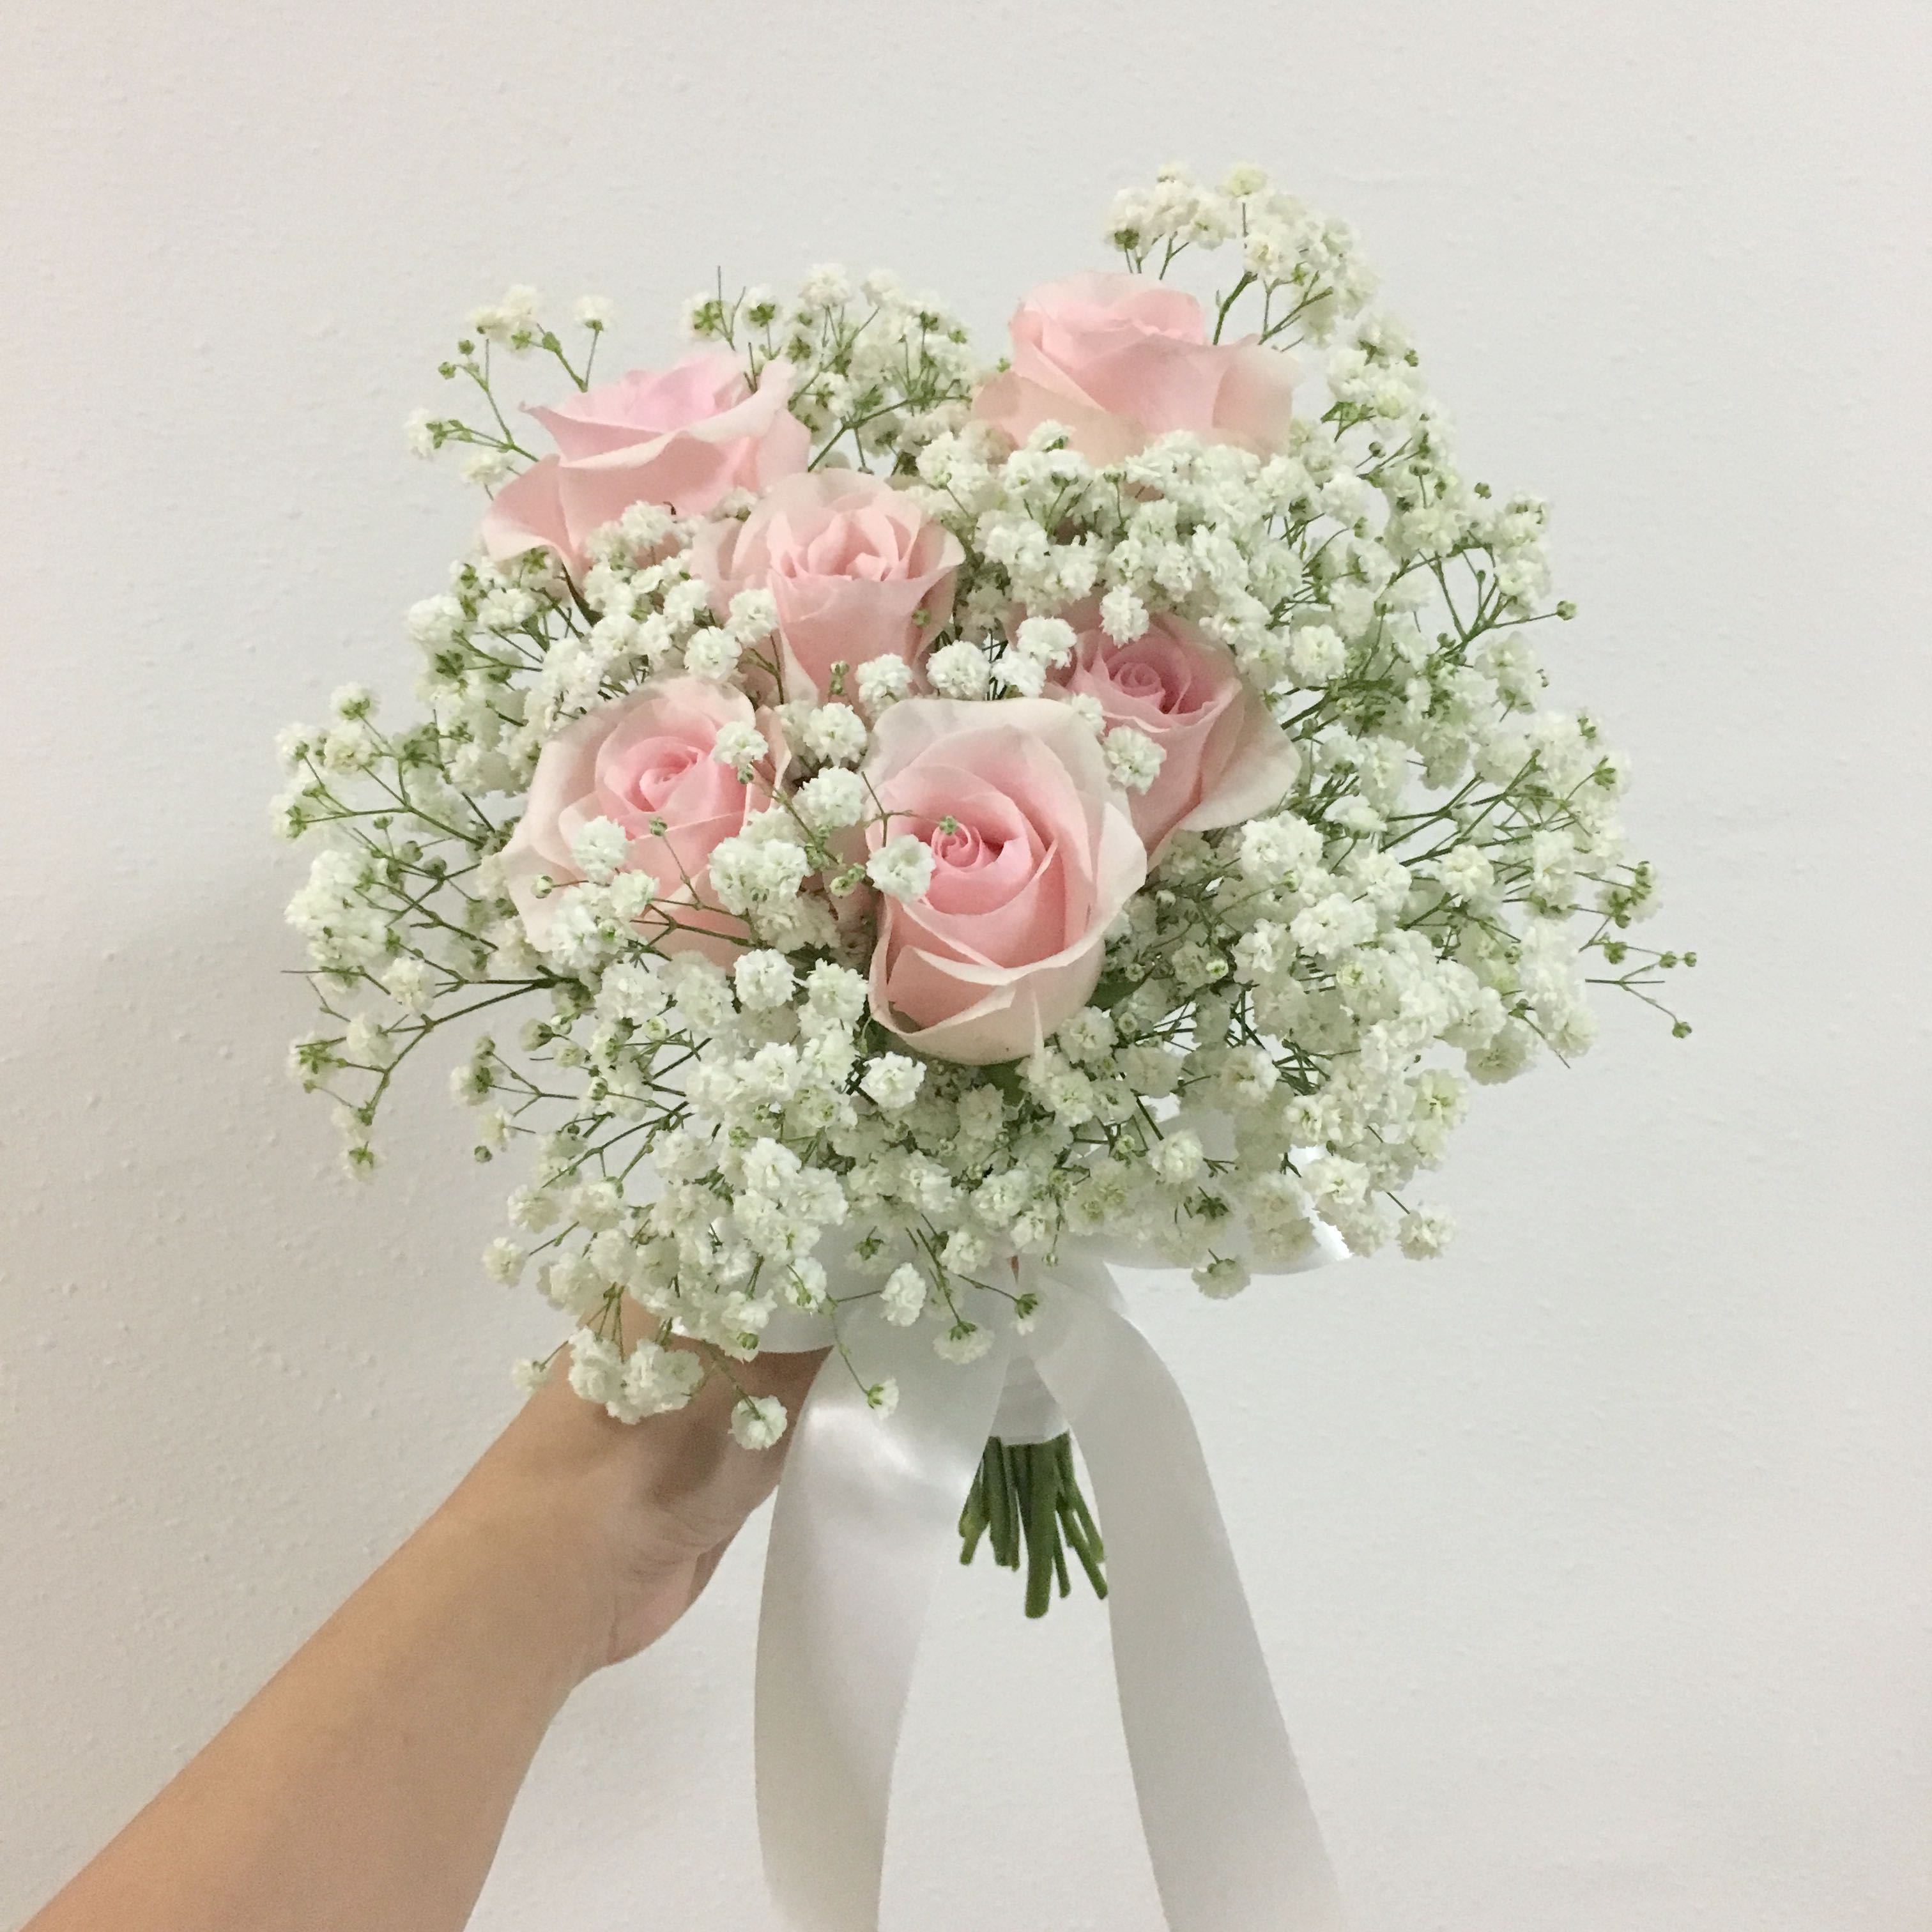 Titanic Roses In Light Pink Roses With Baby Breath Rom Bouquet Bridal Bouquet Gardening Flowers Bouquets On Carousell